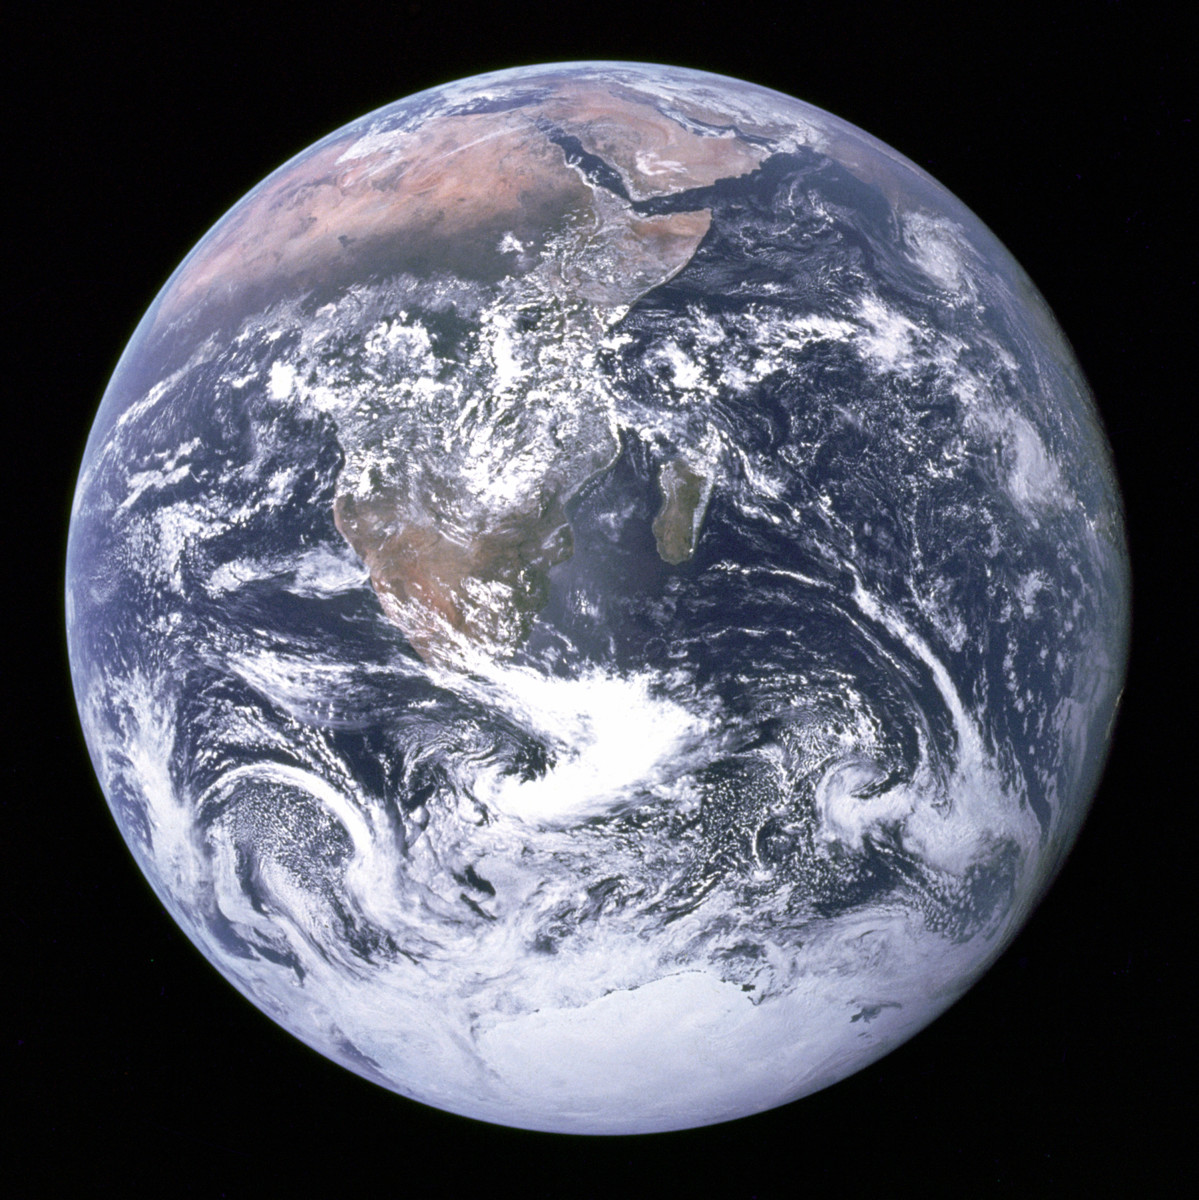 How many more pictures do we need to see that the Earth is round?